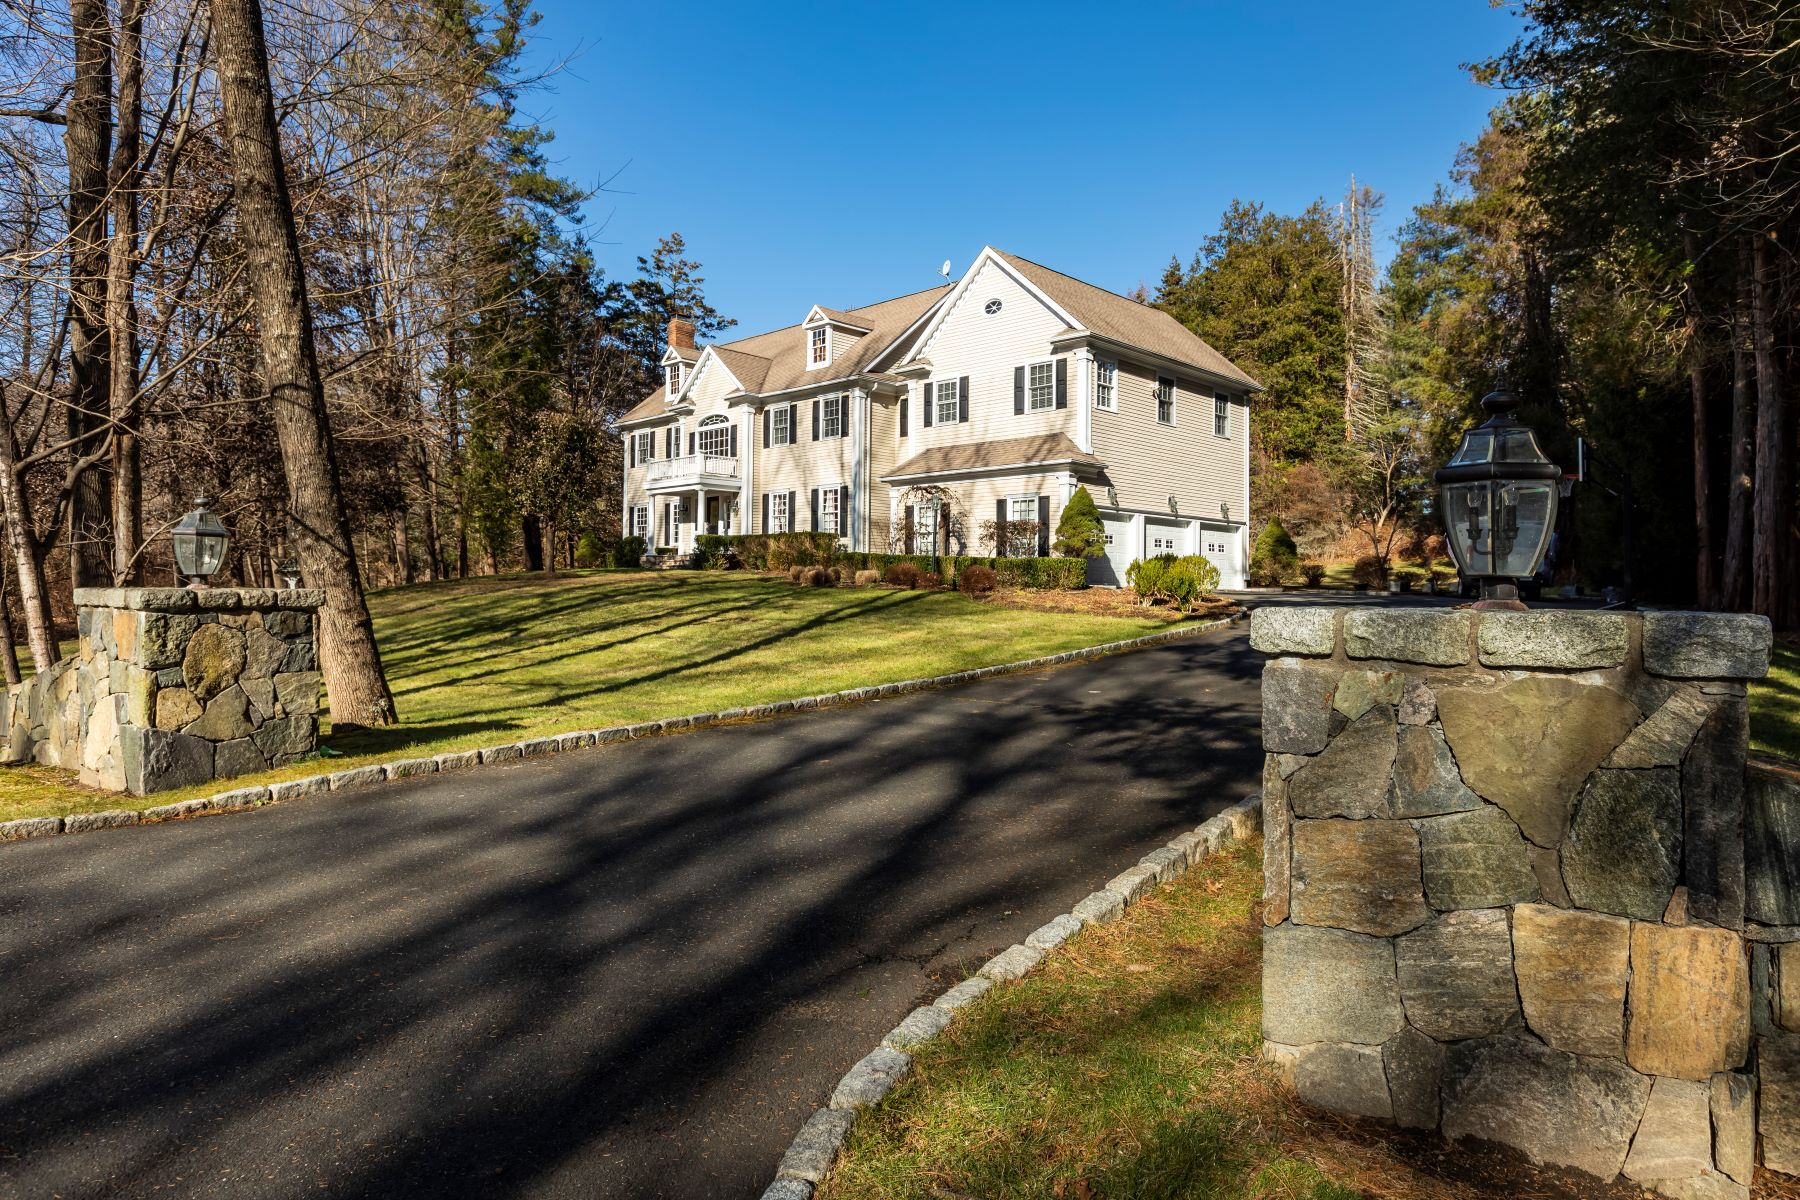 Single Family Homes for Sale at CUSTOM LETOURNEAU-BUILT COLONIAL! 50 Old South Salem Road Ridgefield, Connecticut 06877 United States